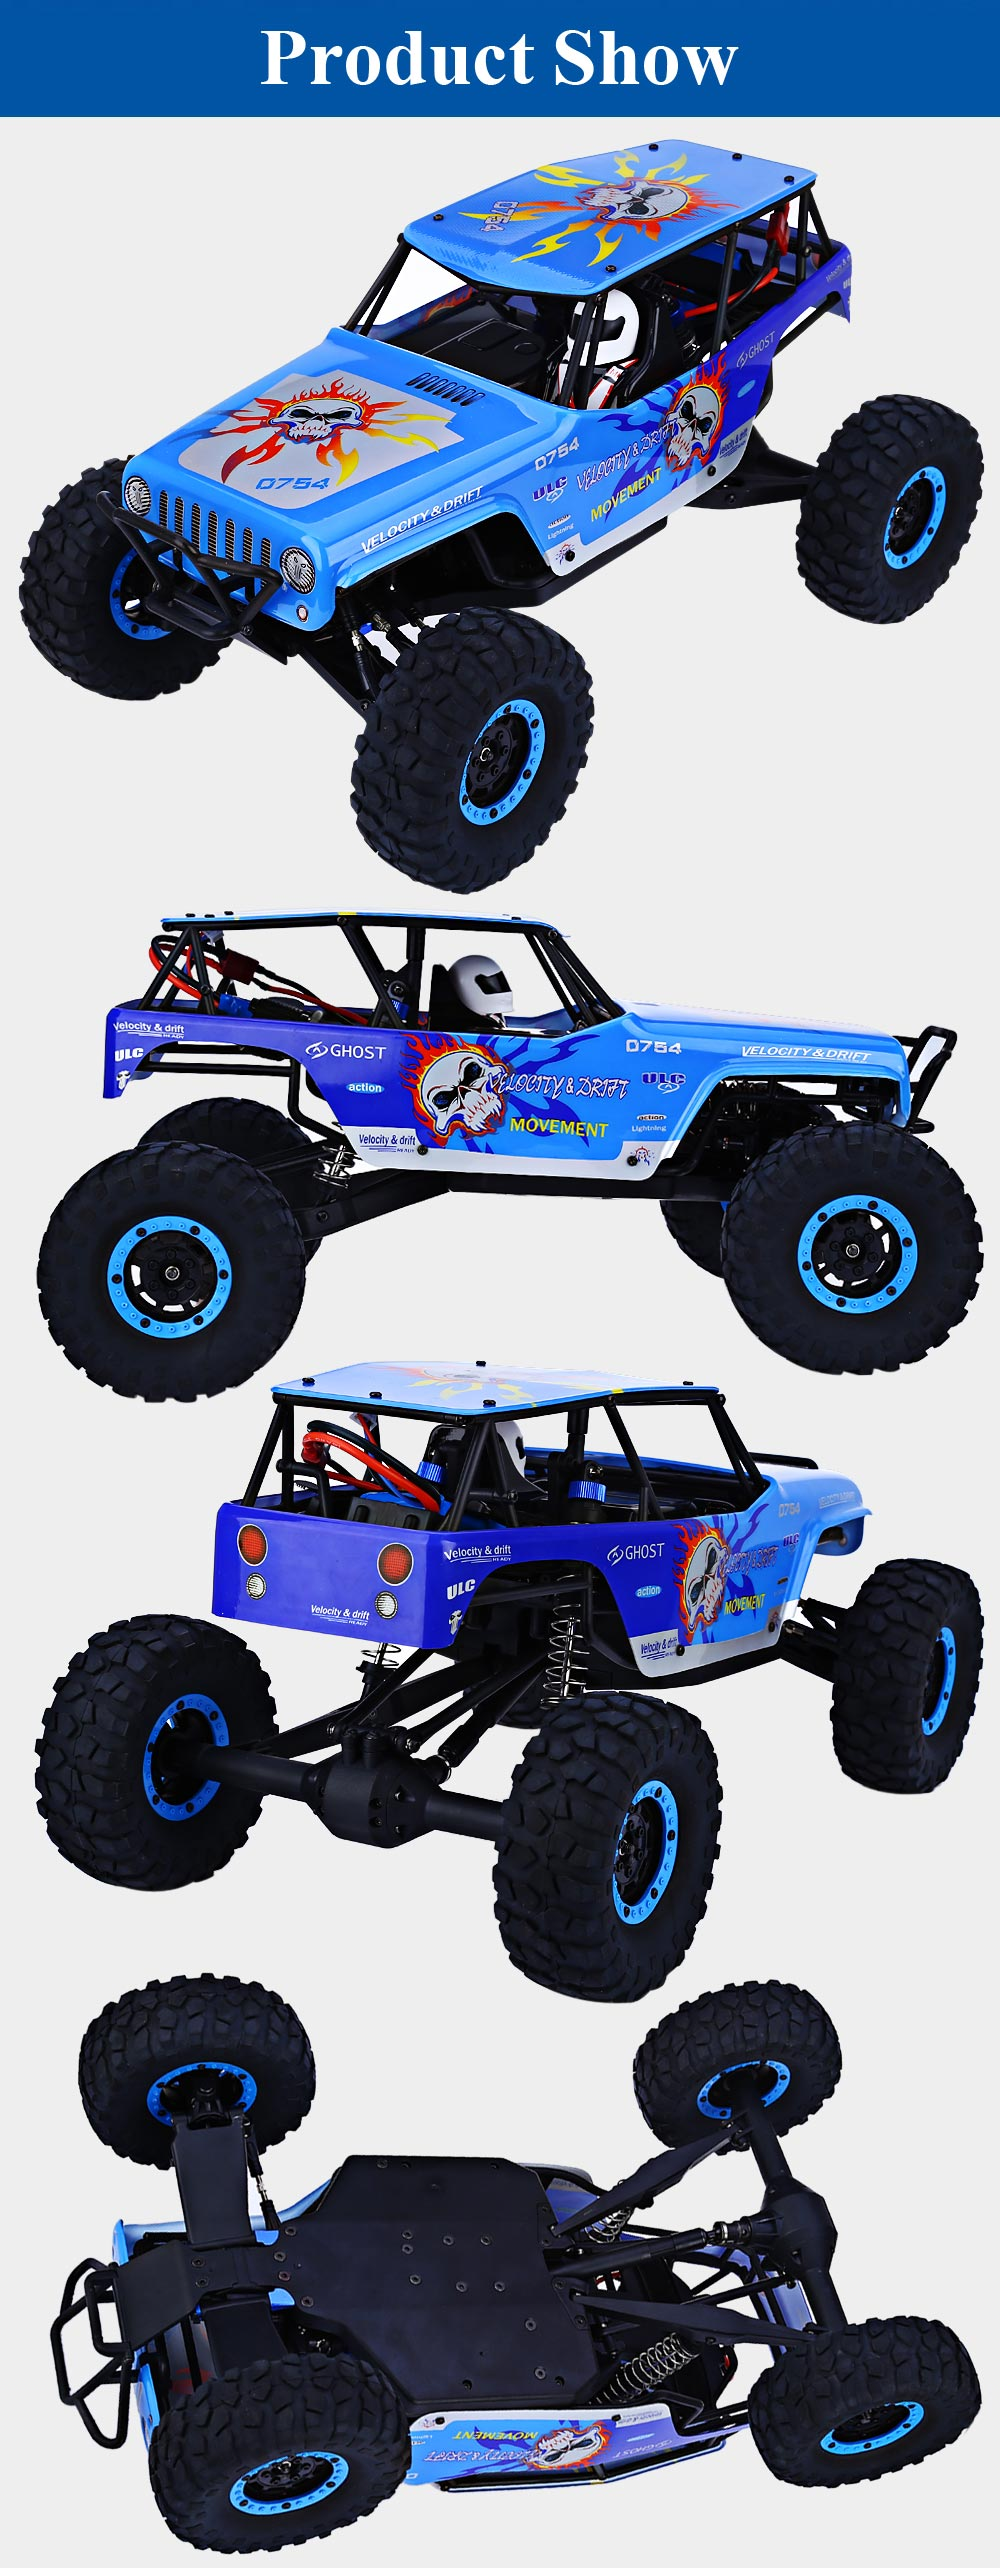 WLtoys 10428A 2.4G 1:10 Scale Remote Control Track Vehicle Toy